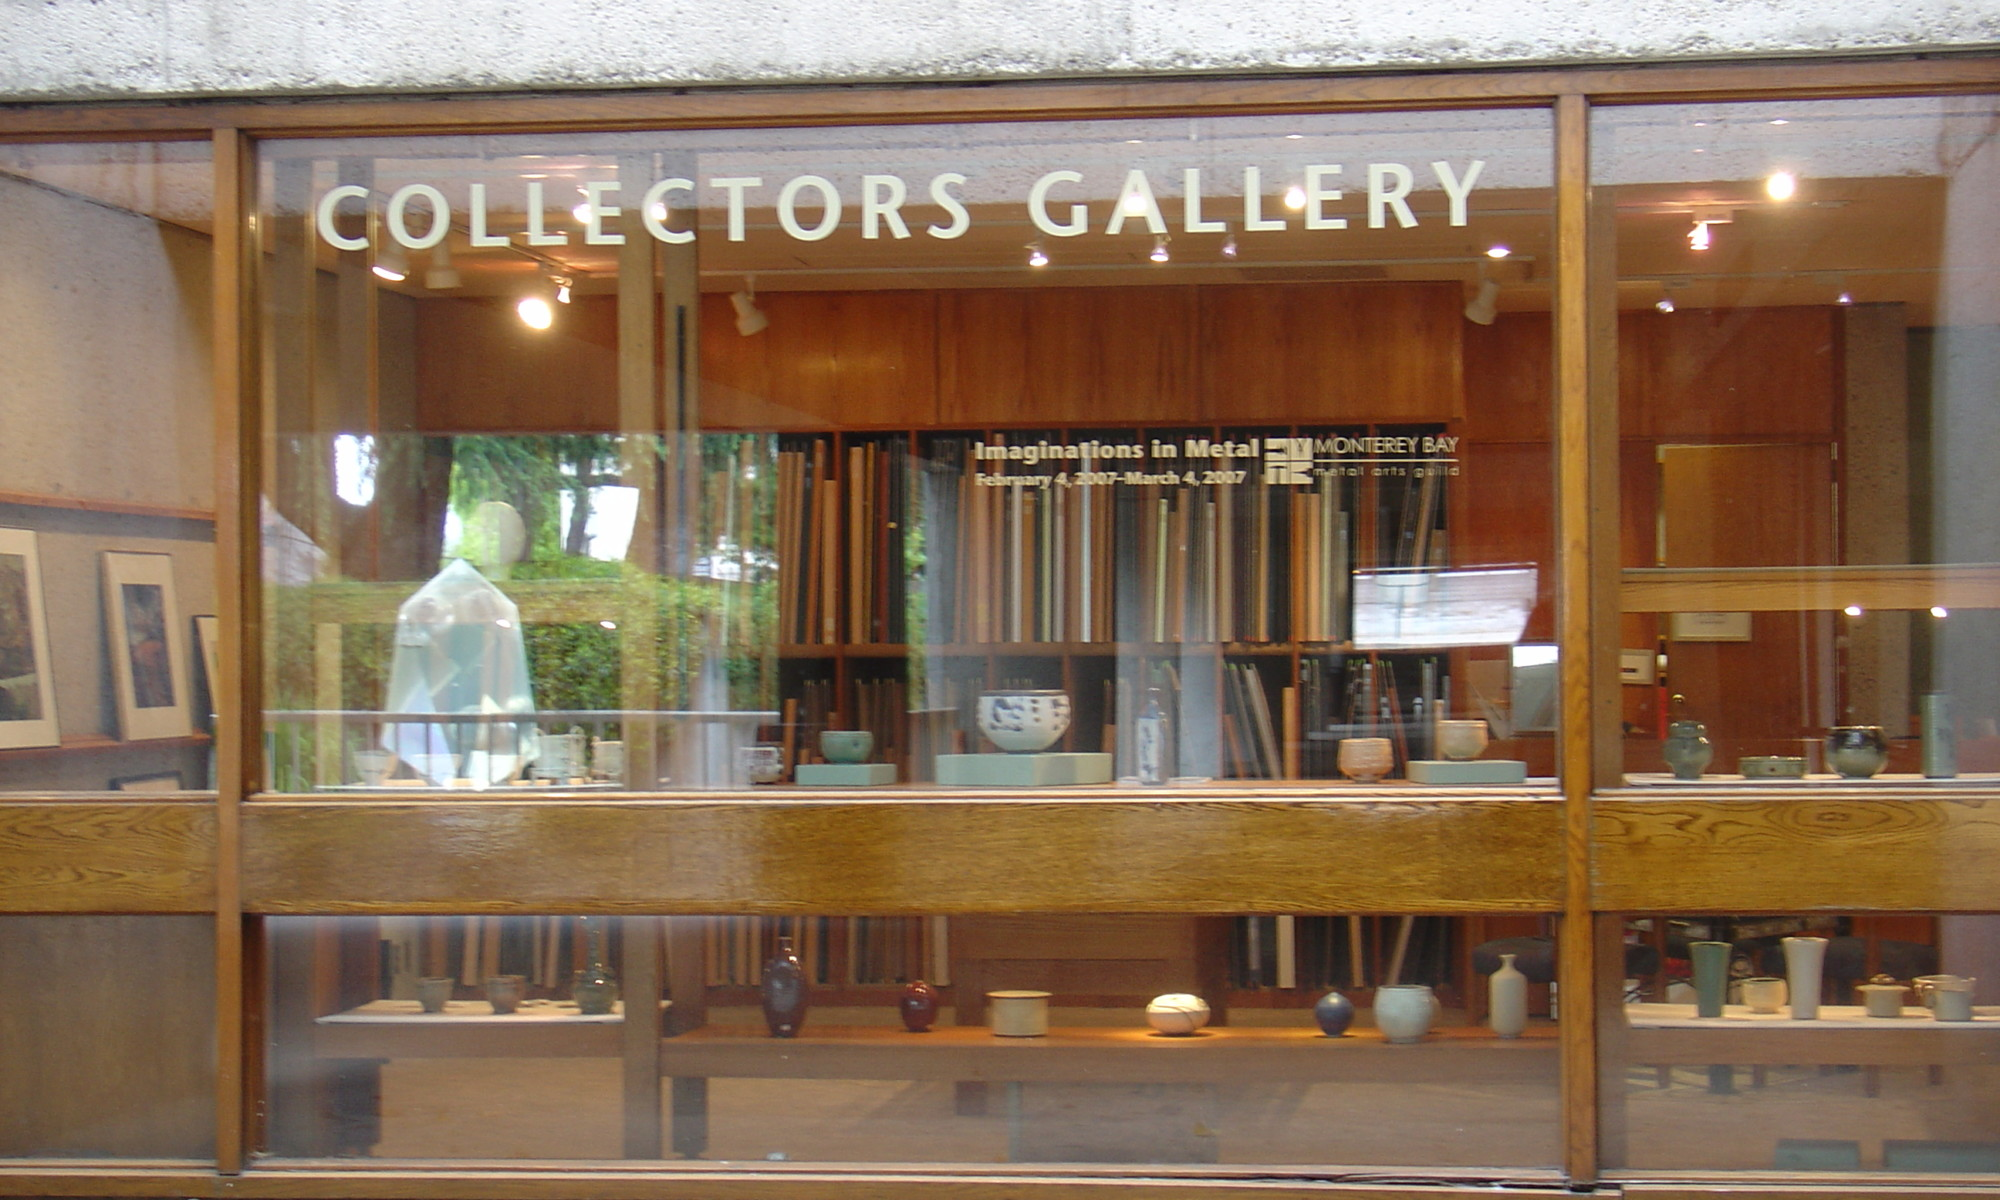 Windows of the Collector's Gallery at the CA Museum of Oakland